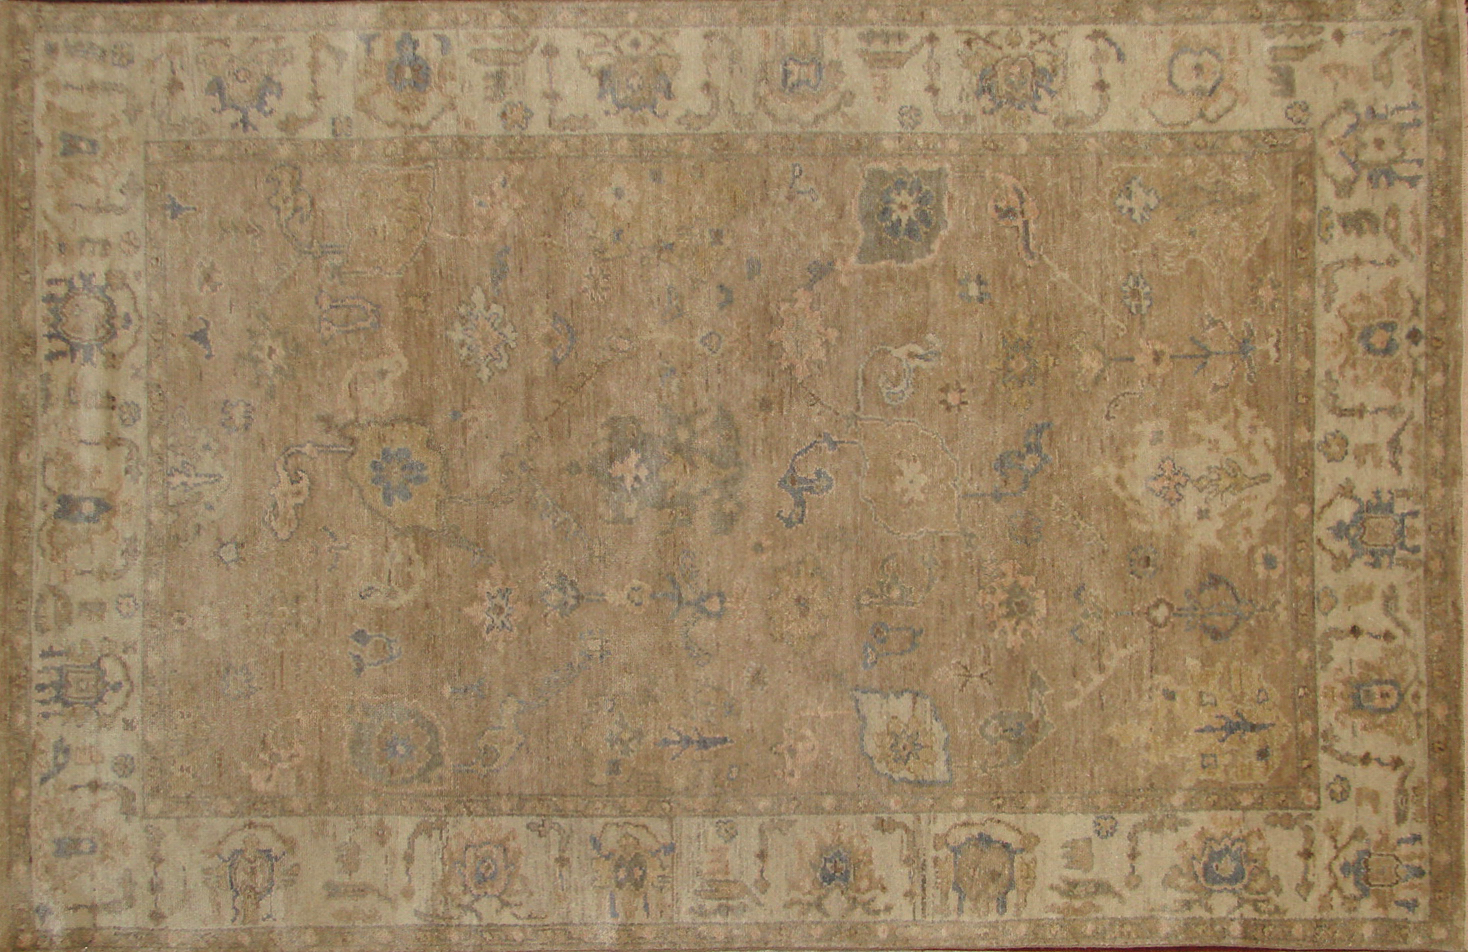 5x7/8 Oushak Hand Knotted Wool Area Rug - MR19825